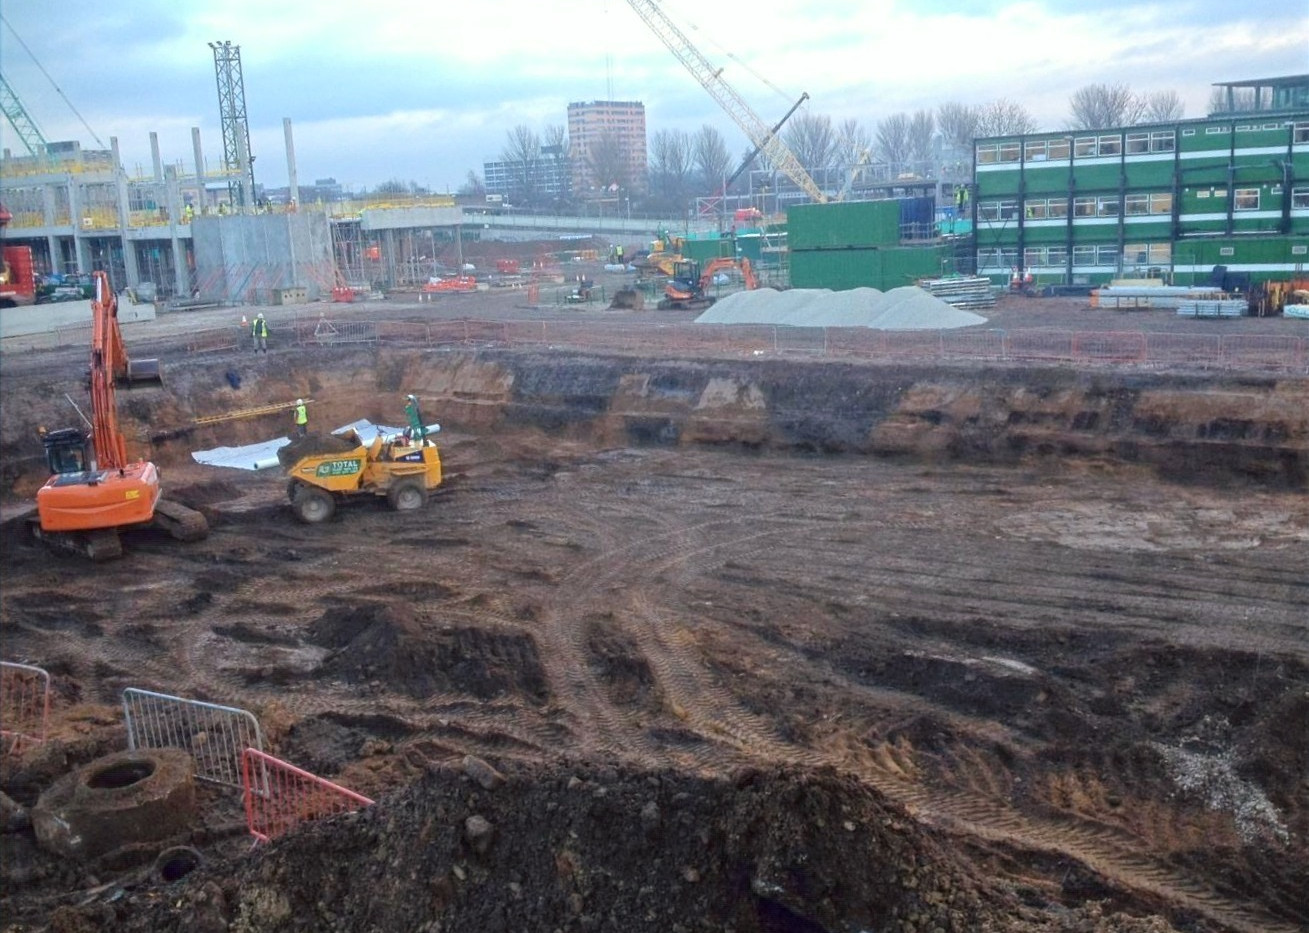 Fallowfield Student Accommodation - excavation